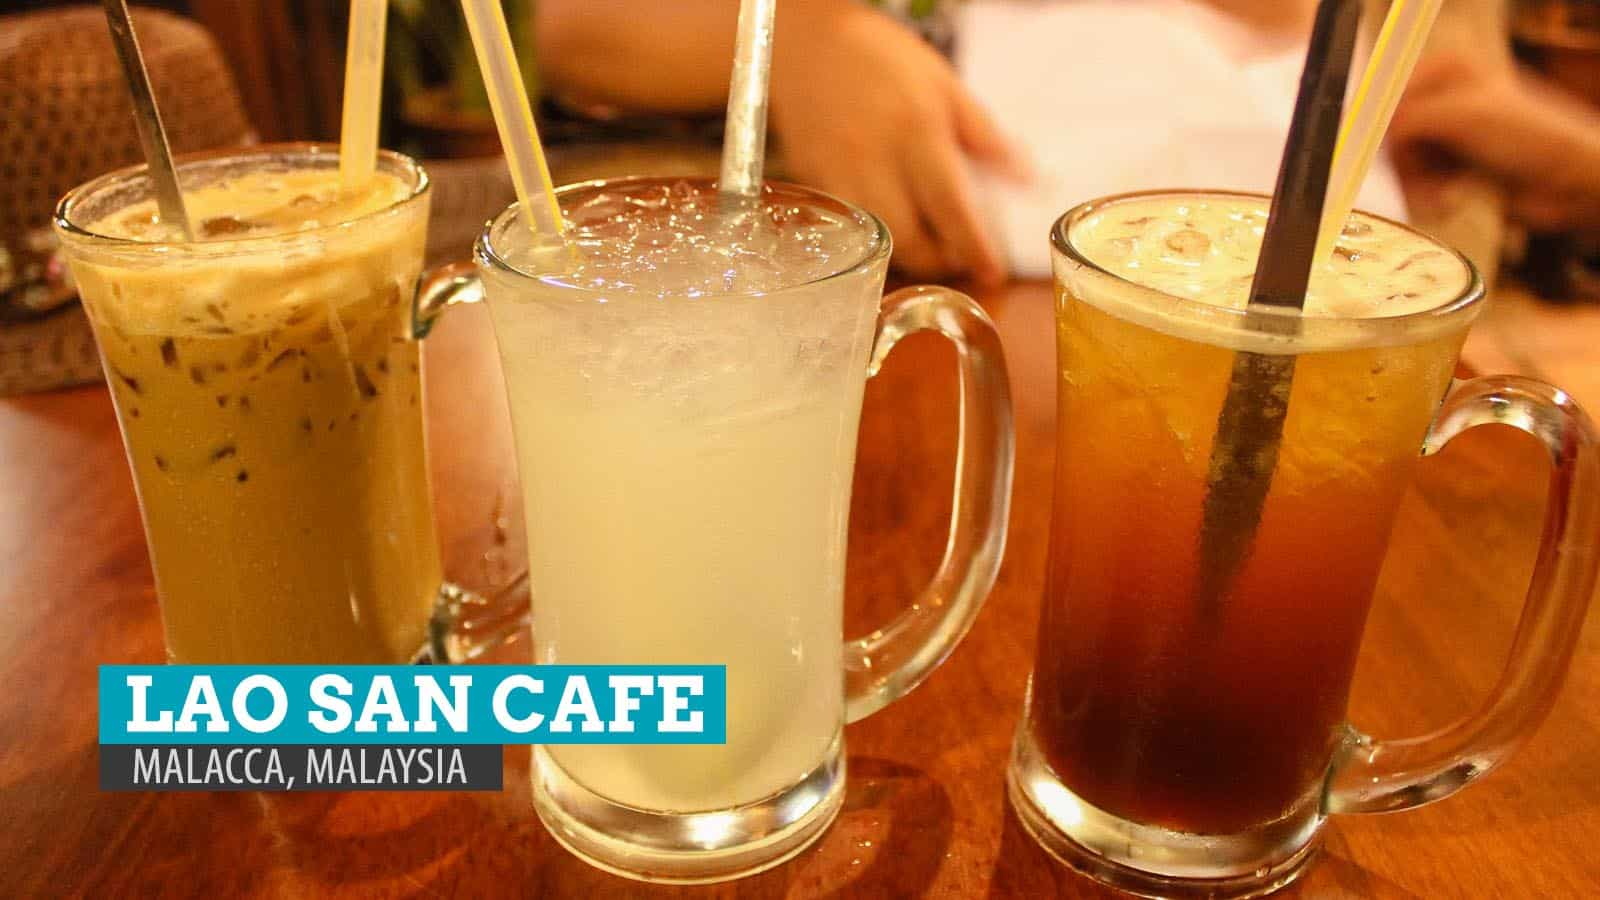 Lao San Cafe: Where to Eat in Malacca, Malaysia